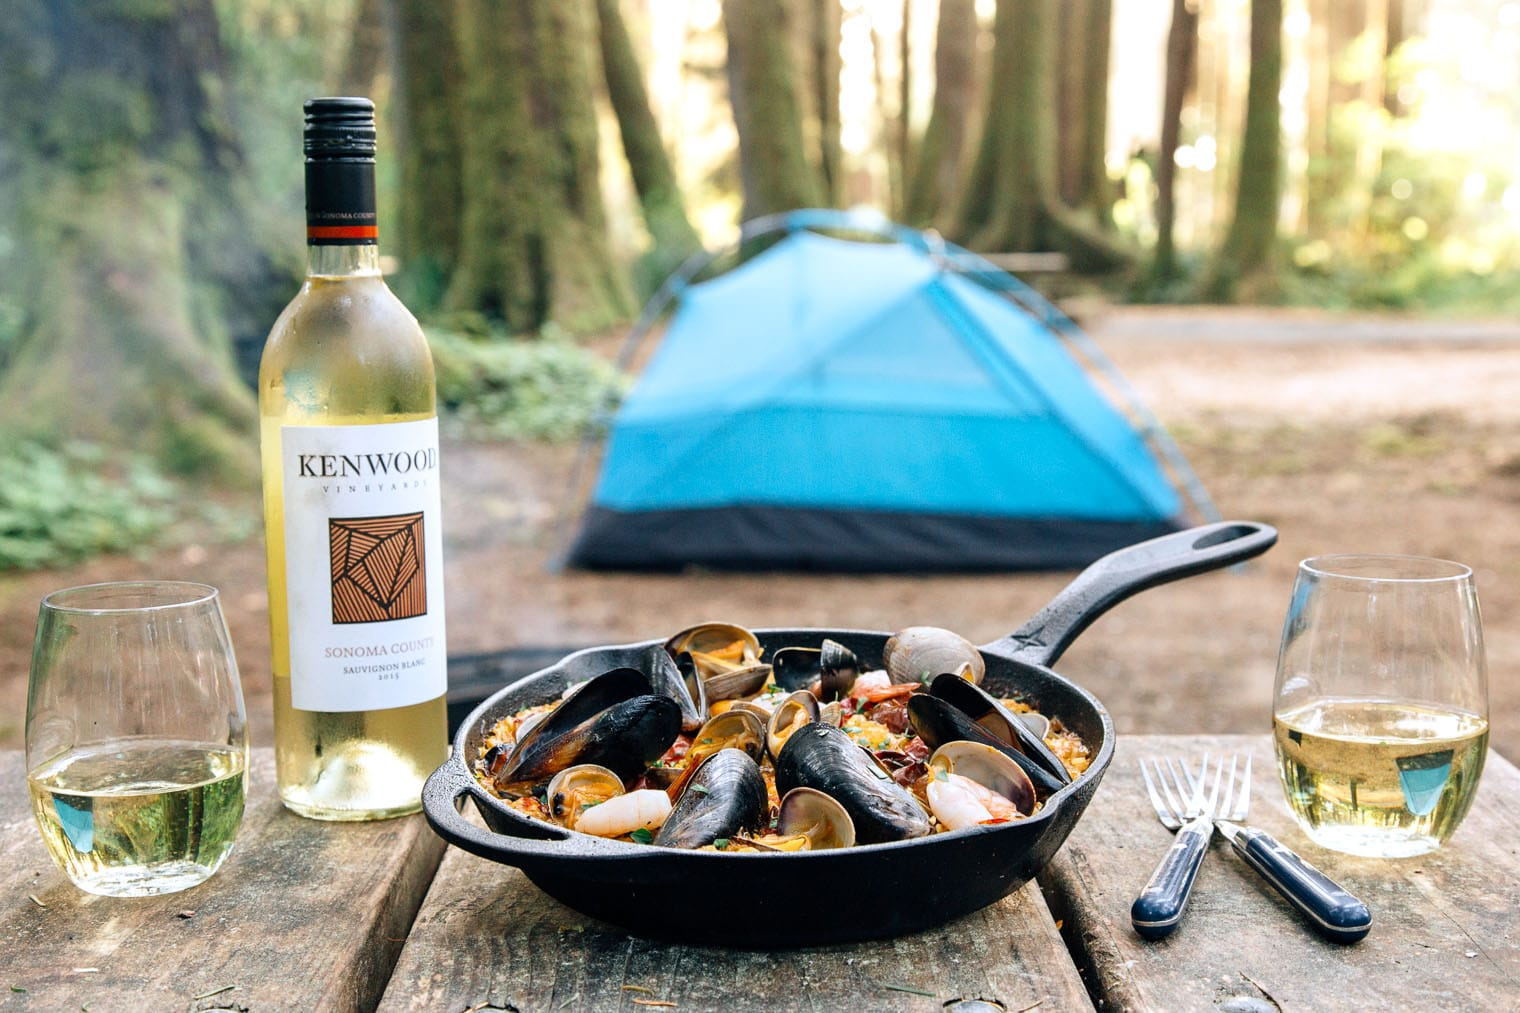 Paella in a cast iron skillet on a camp table with a vlue tent in the background